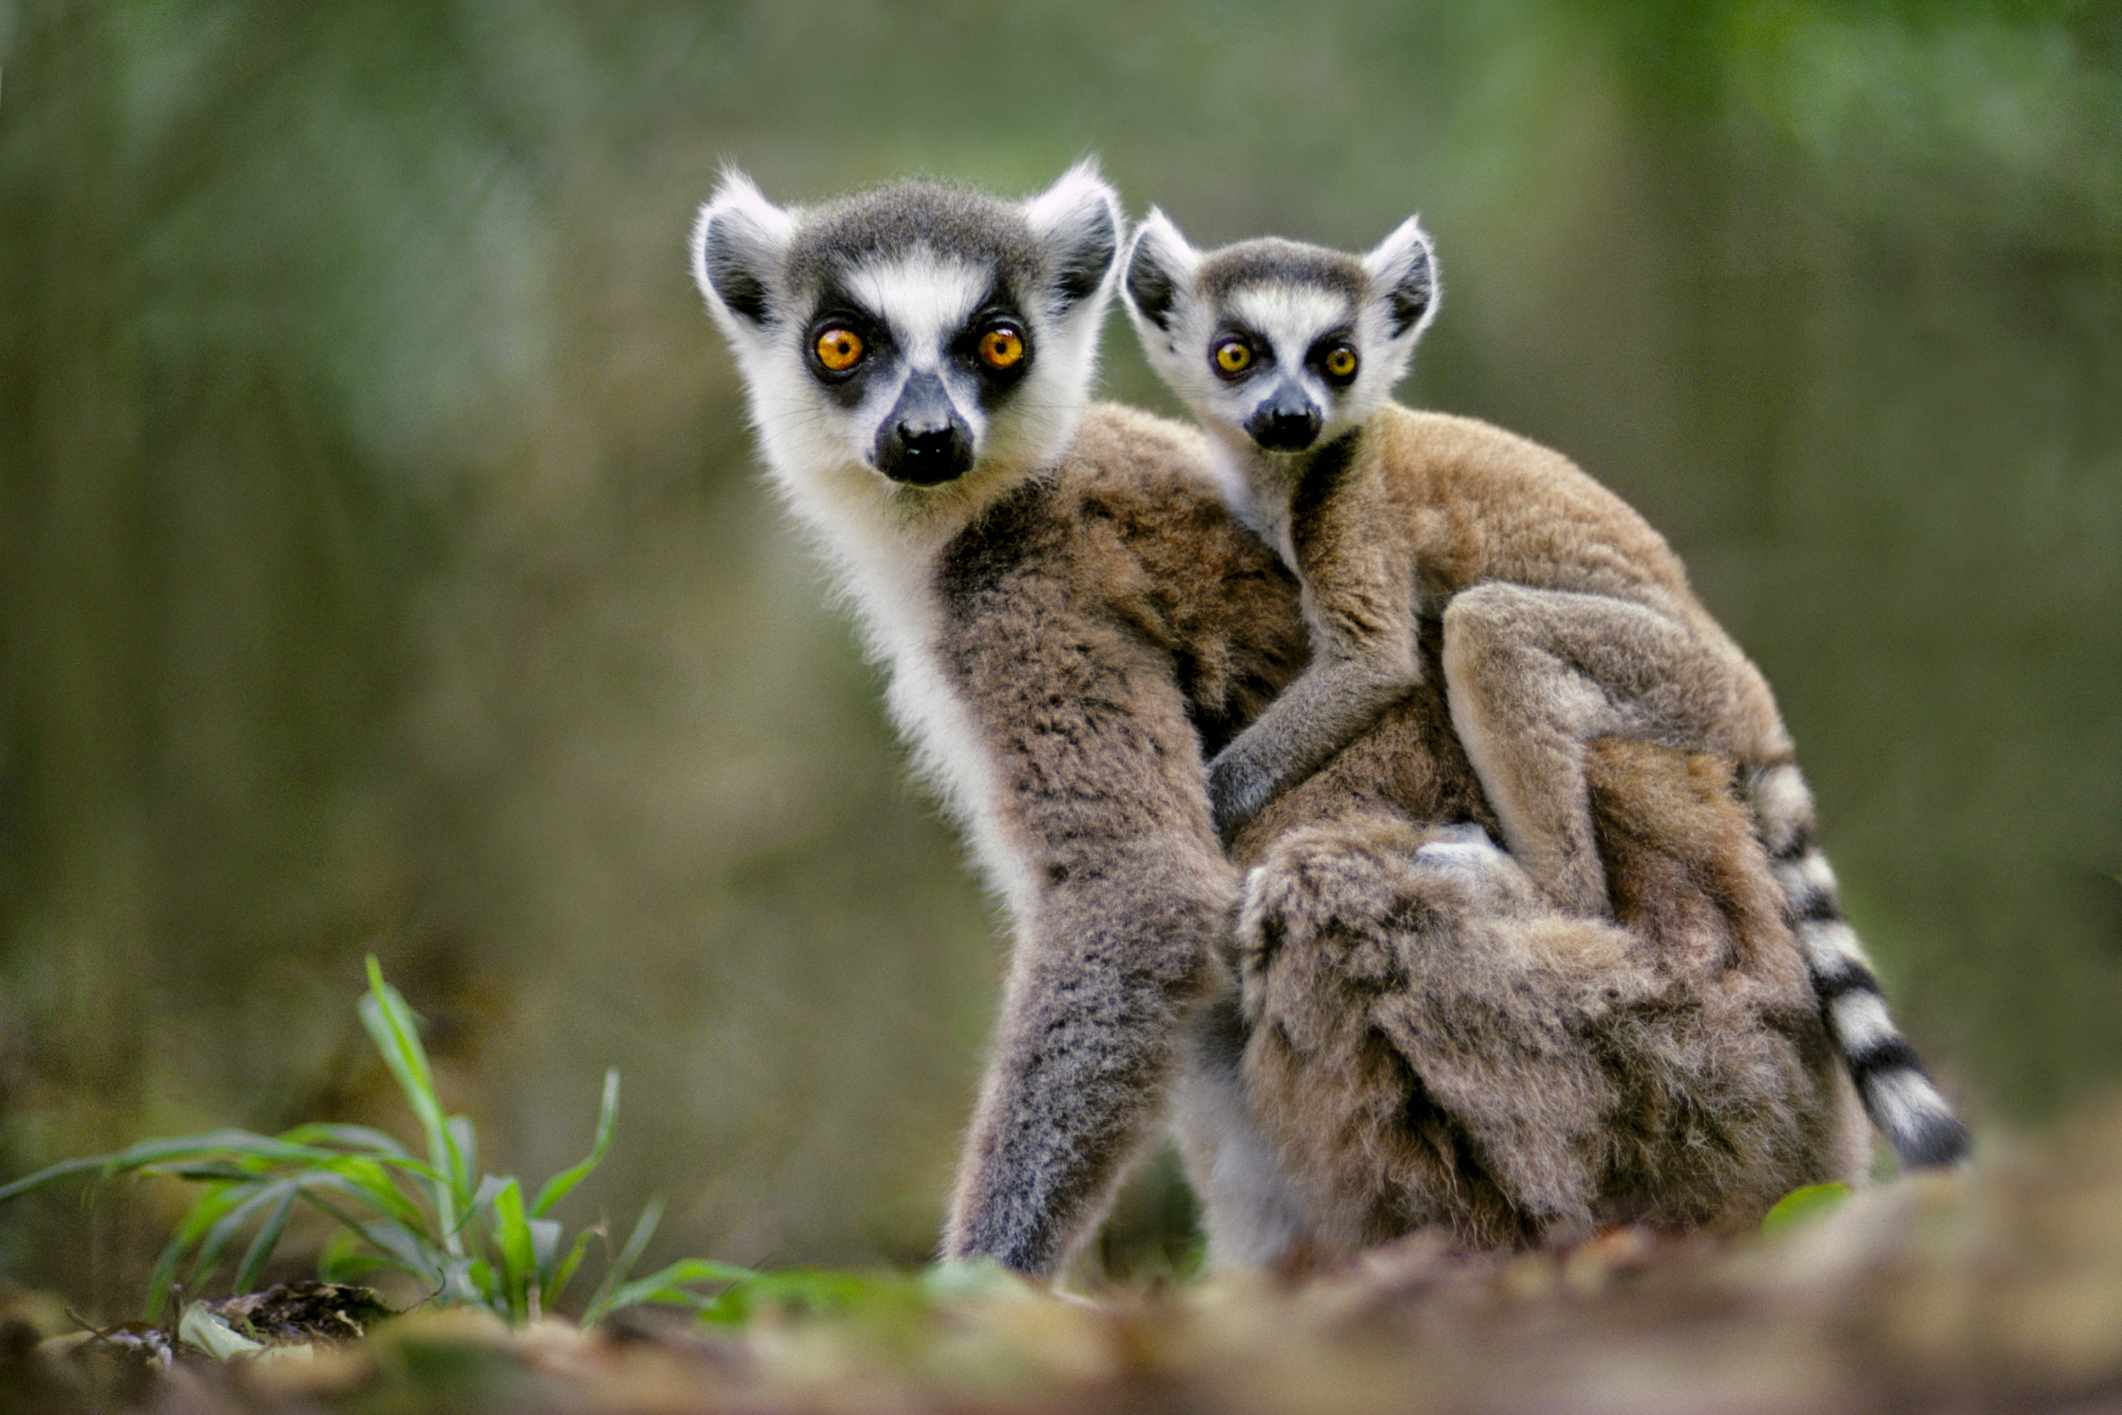 Ring-tailed lemur with a baby on its back